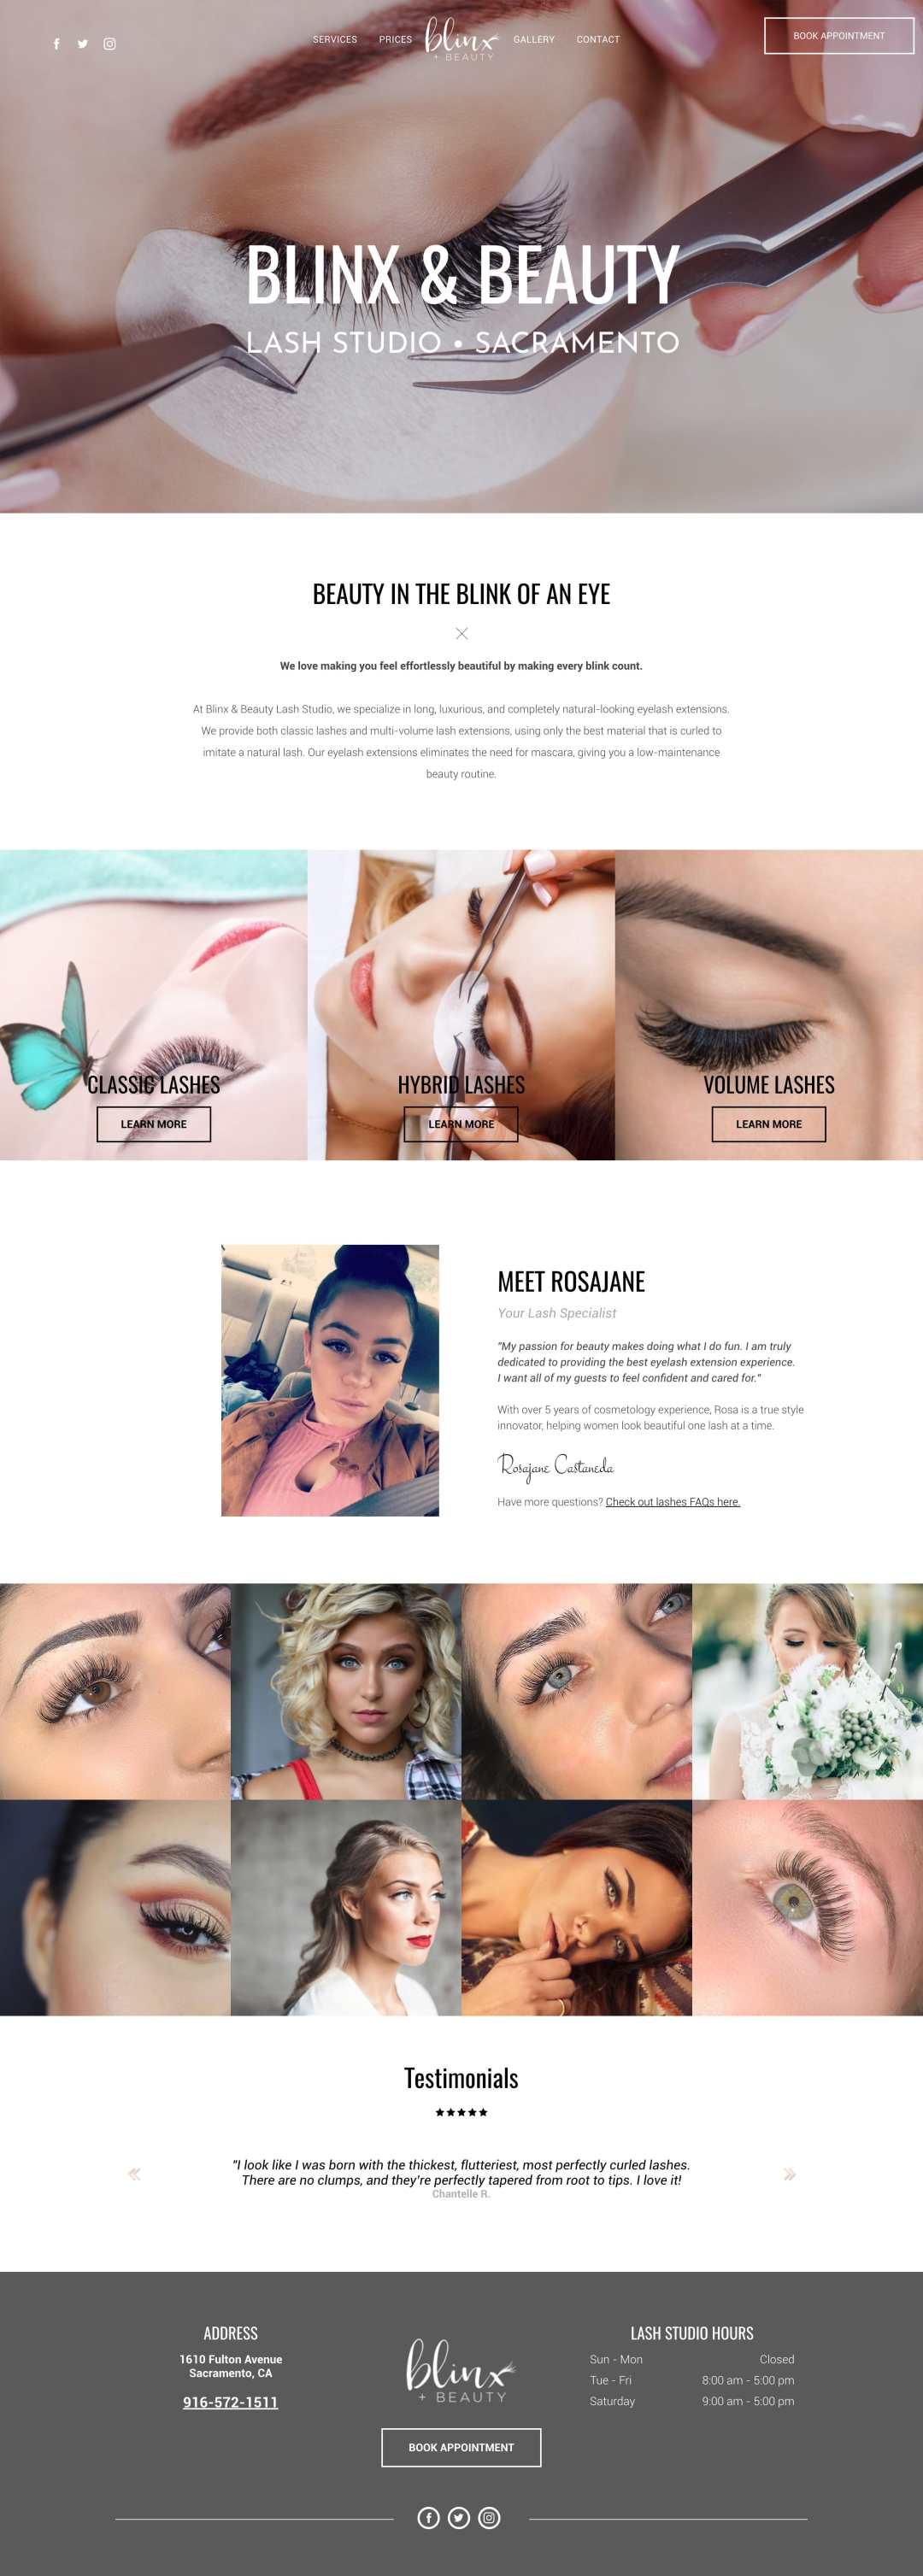 blinxandbeauty eyelash extensions website min - Eyelash Extensions Branding & Website